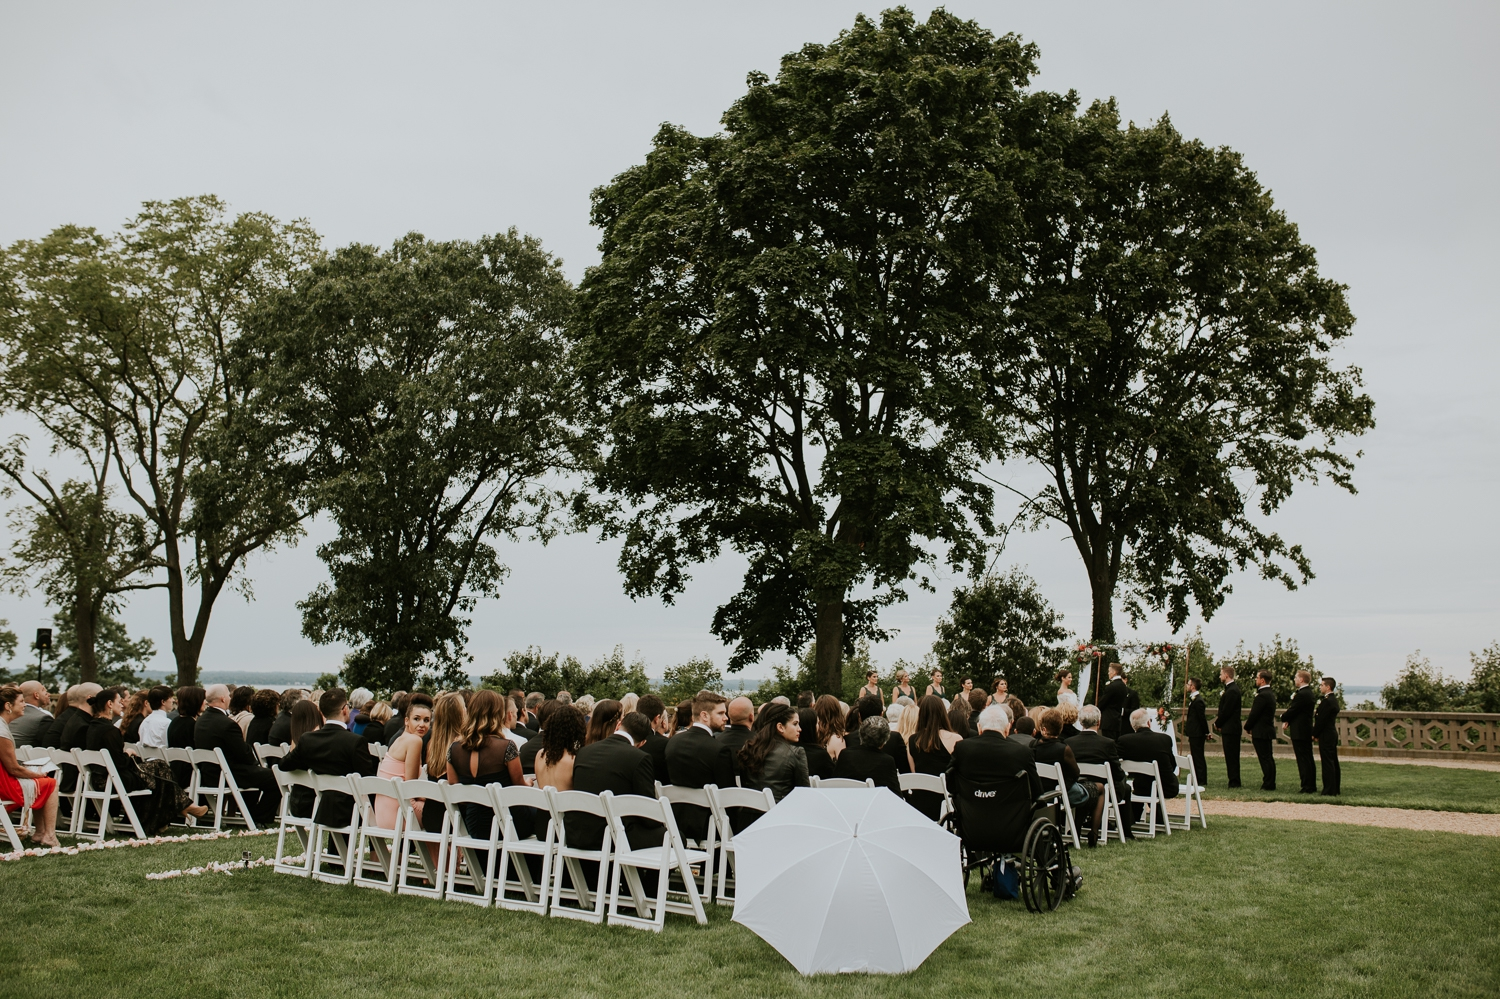 hempstead_house_new_york_wedding_photographer 67.jpg